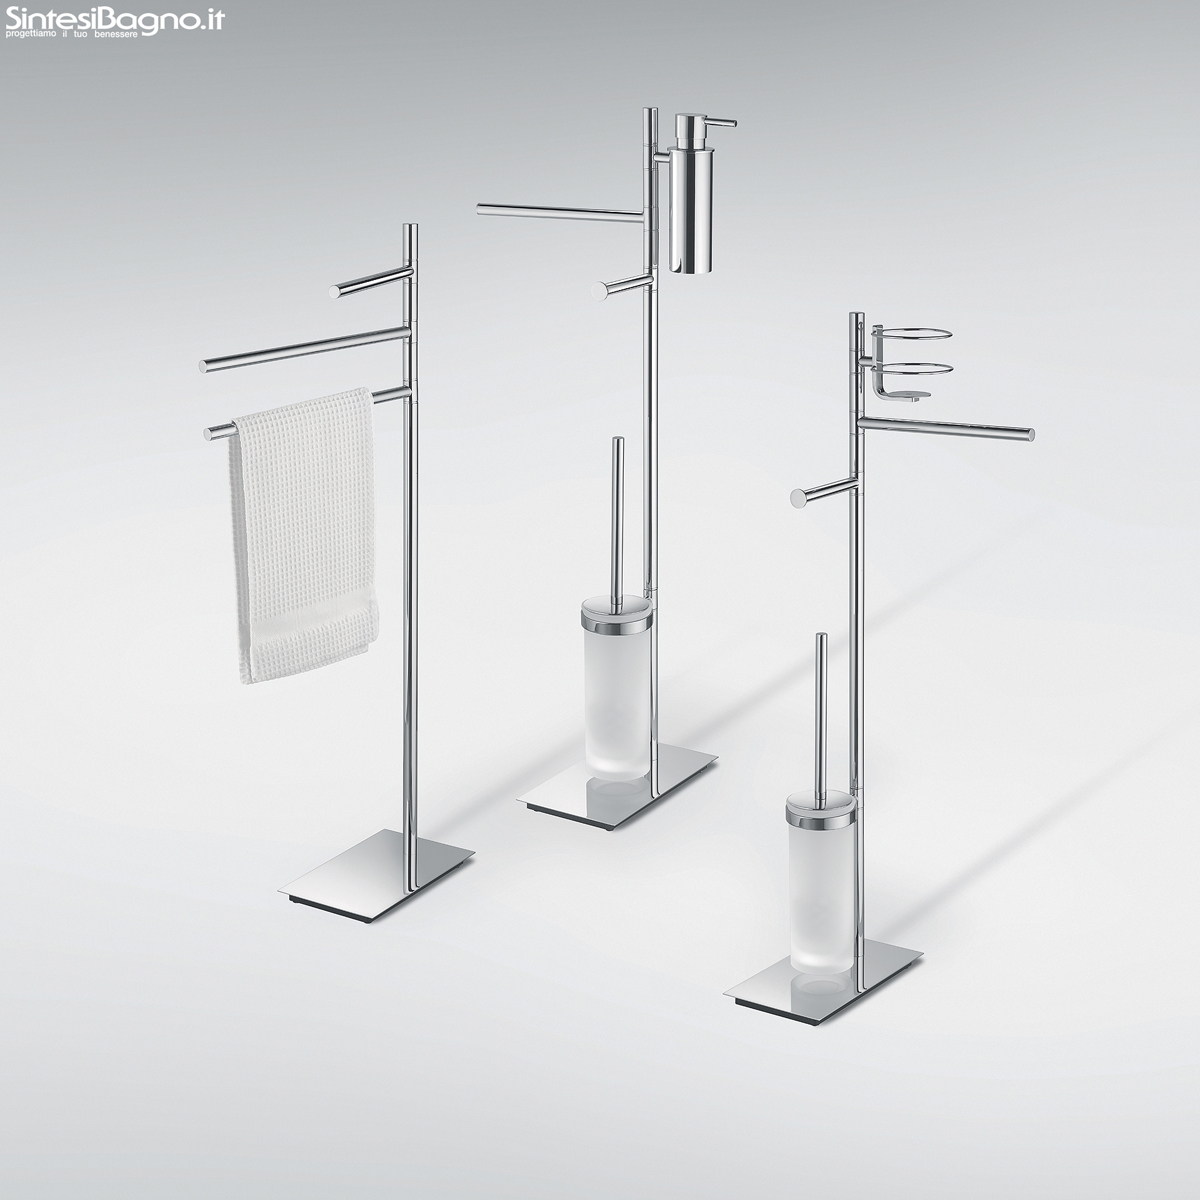 Accessori bagno piantane colombo design serie square shop online sintesibagnoblog - Accessori bagno design vendita on line ...